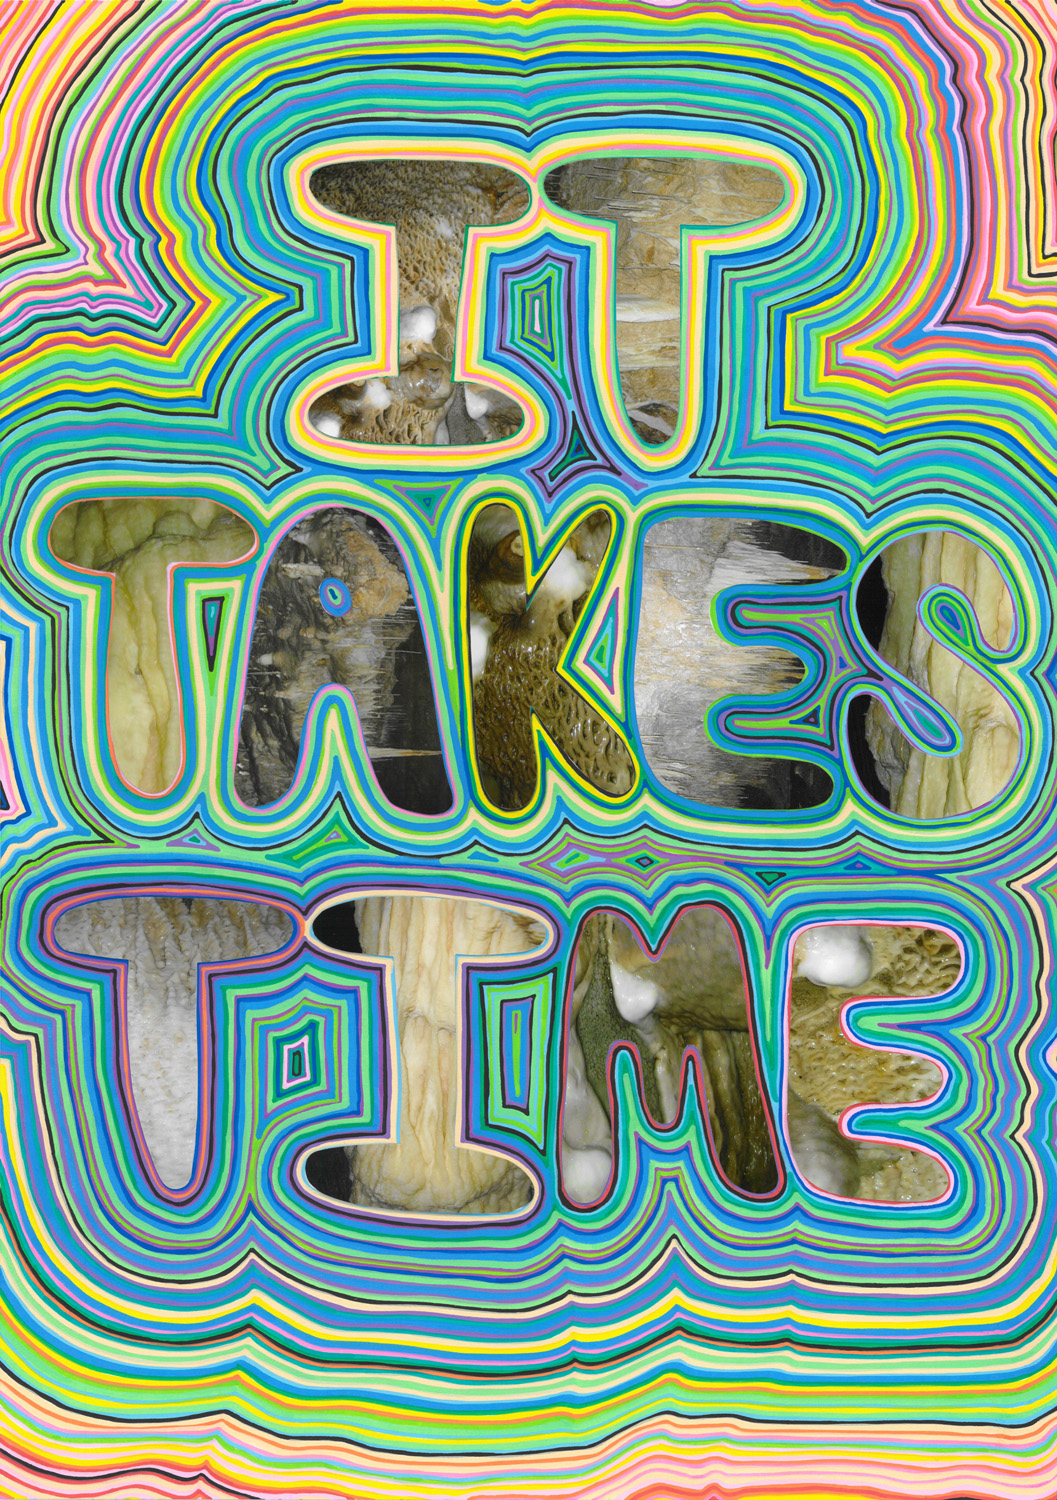 It Takes Time (2012), photo and acrylic on paper, 59.4 x 42cm